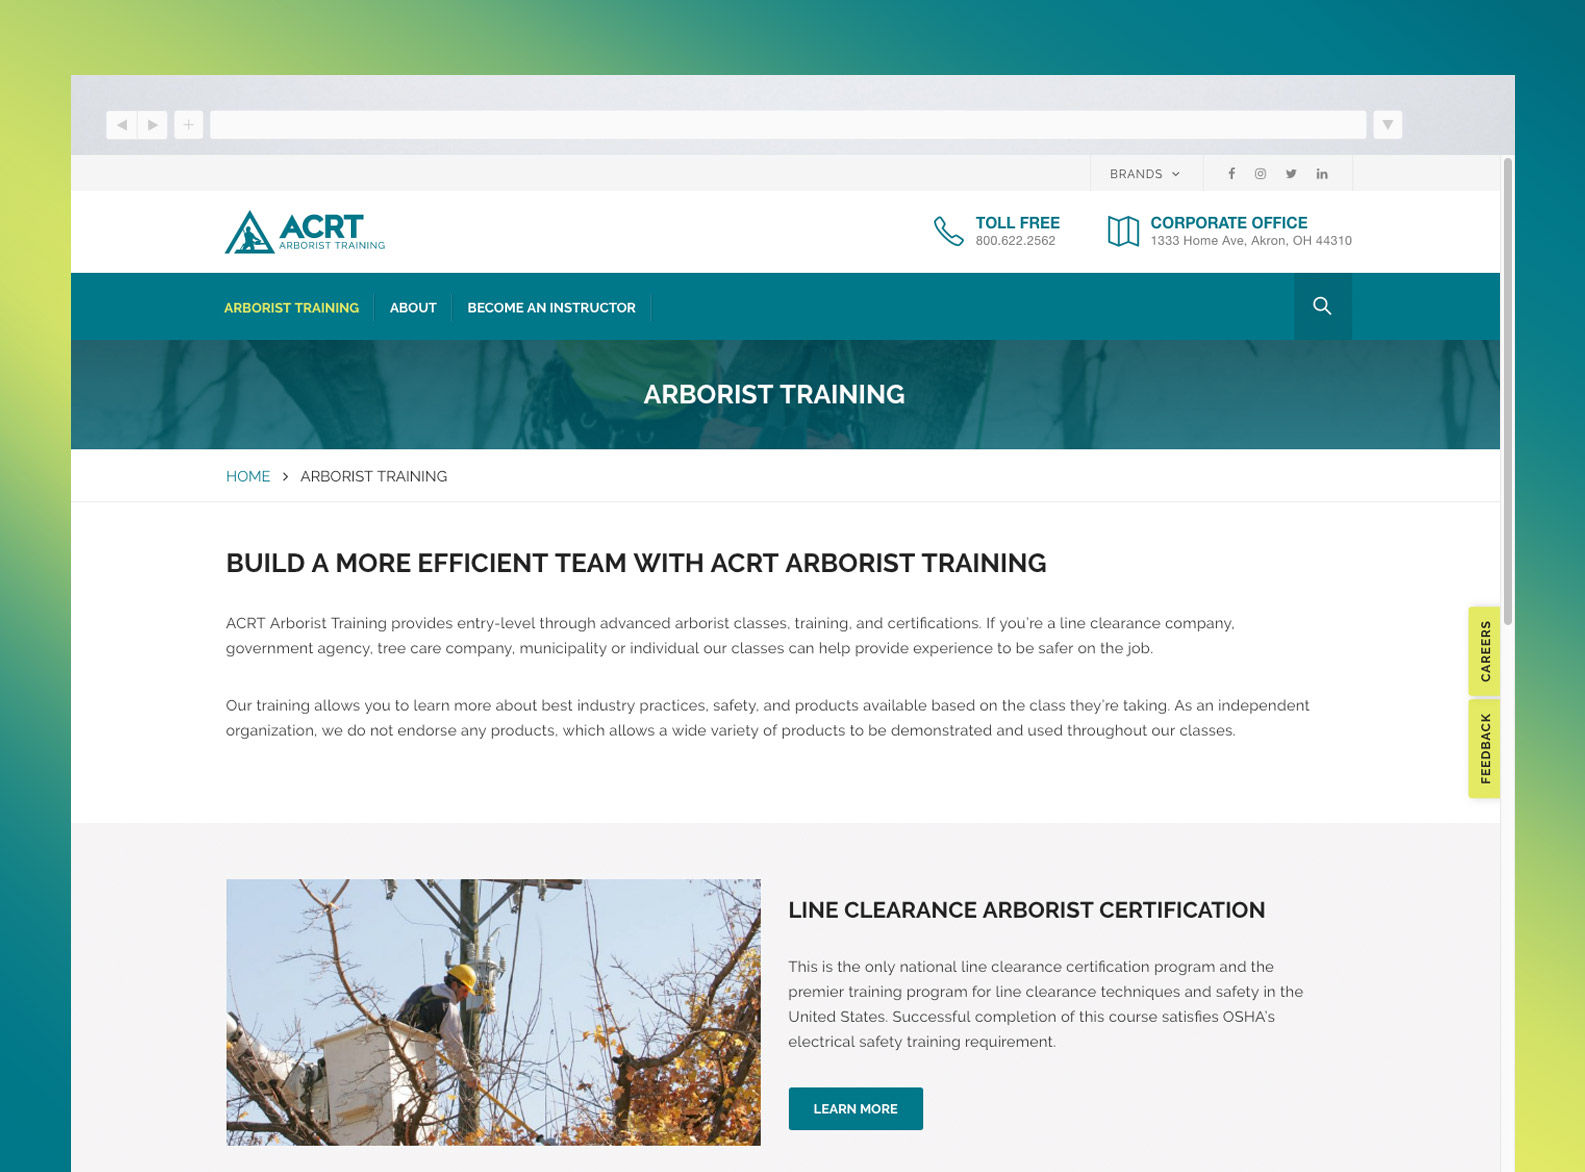 ACRT Arborist Training Website